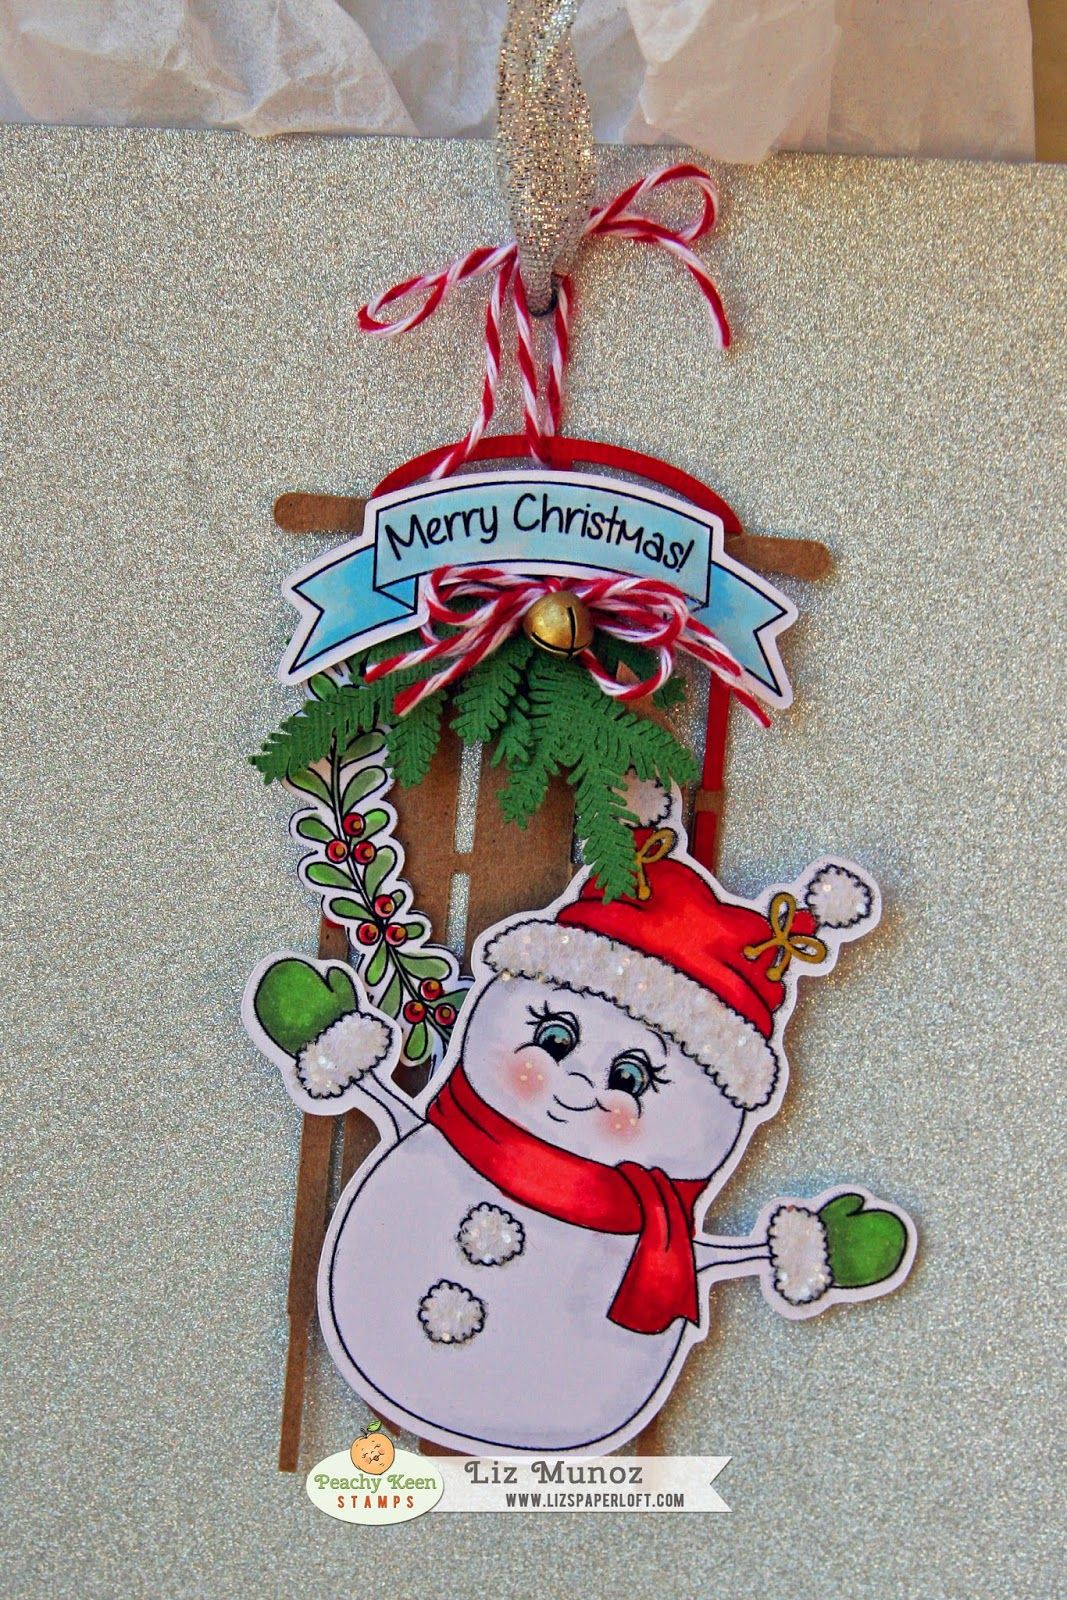 PKS July Release Blog Hop ~ Merry Christmas! Peachy Keen Stamps Tag